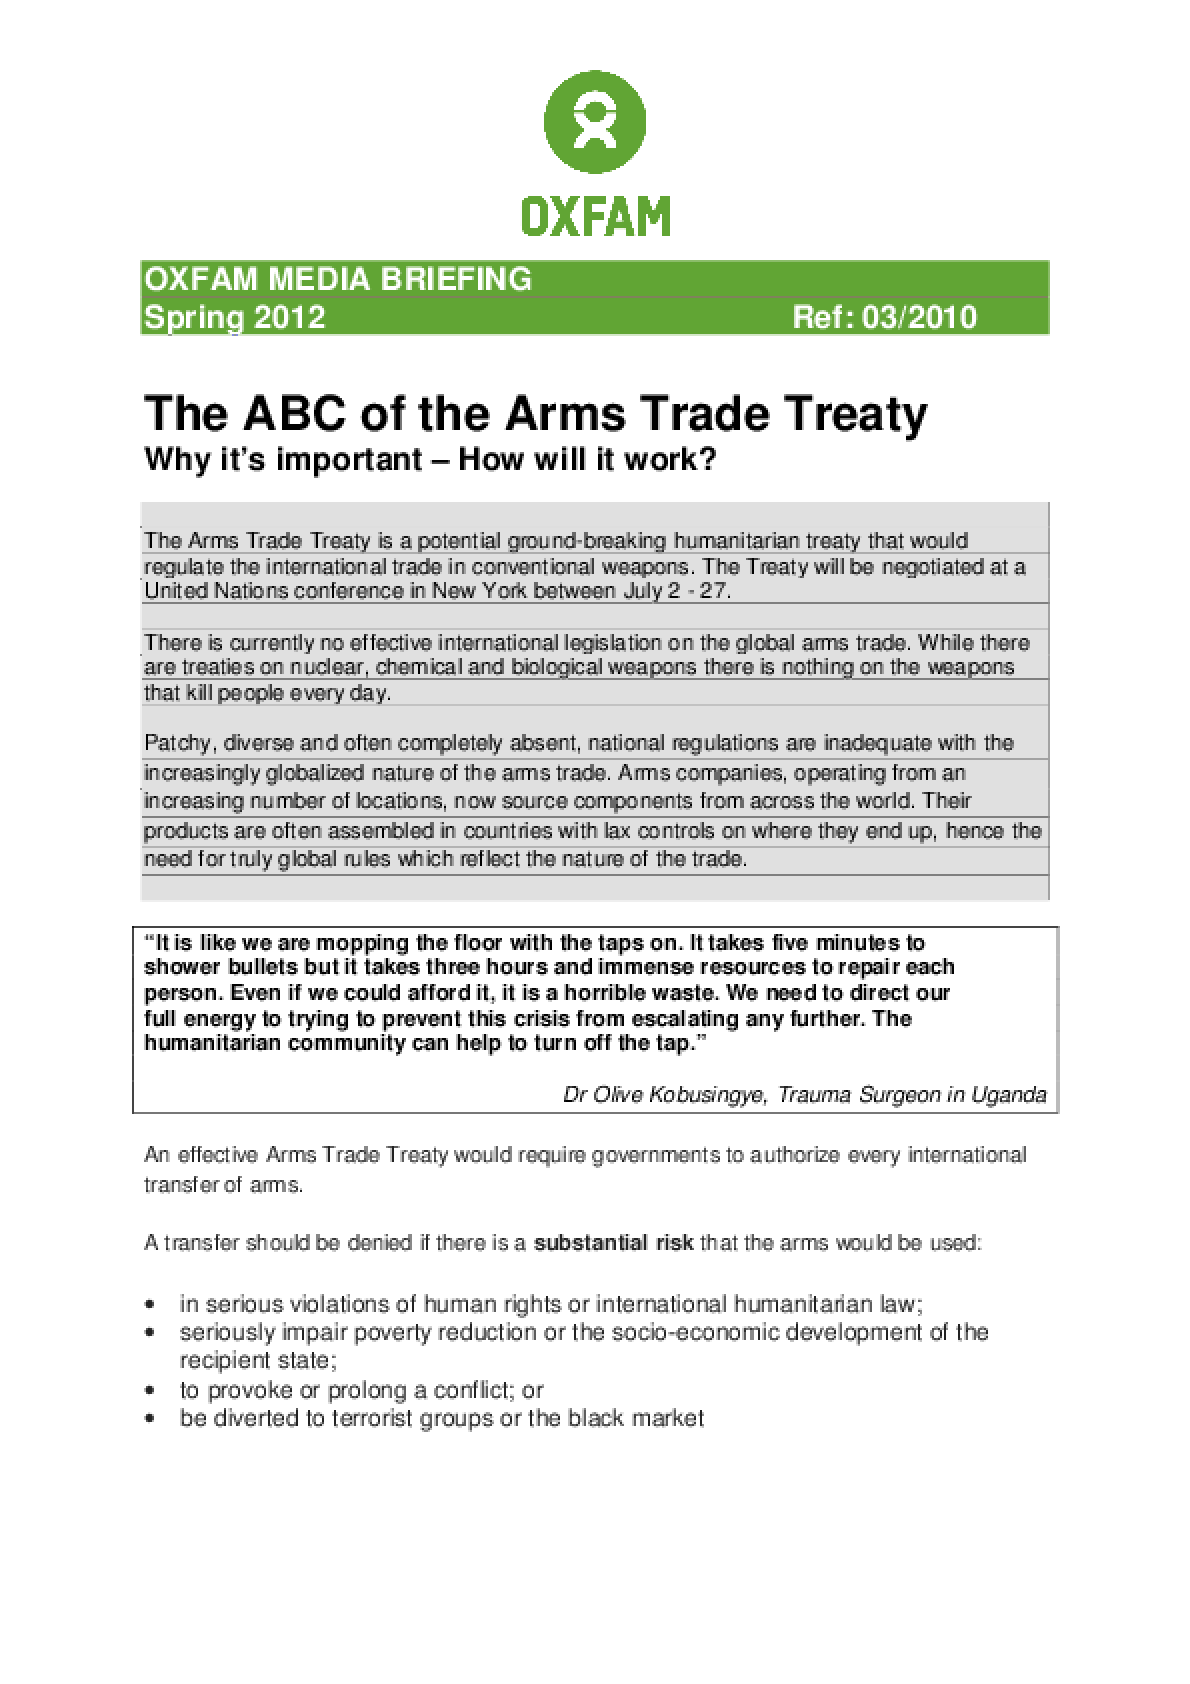 The ABC of the Arms Trade Treaty: Why it's important - How will it work?